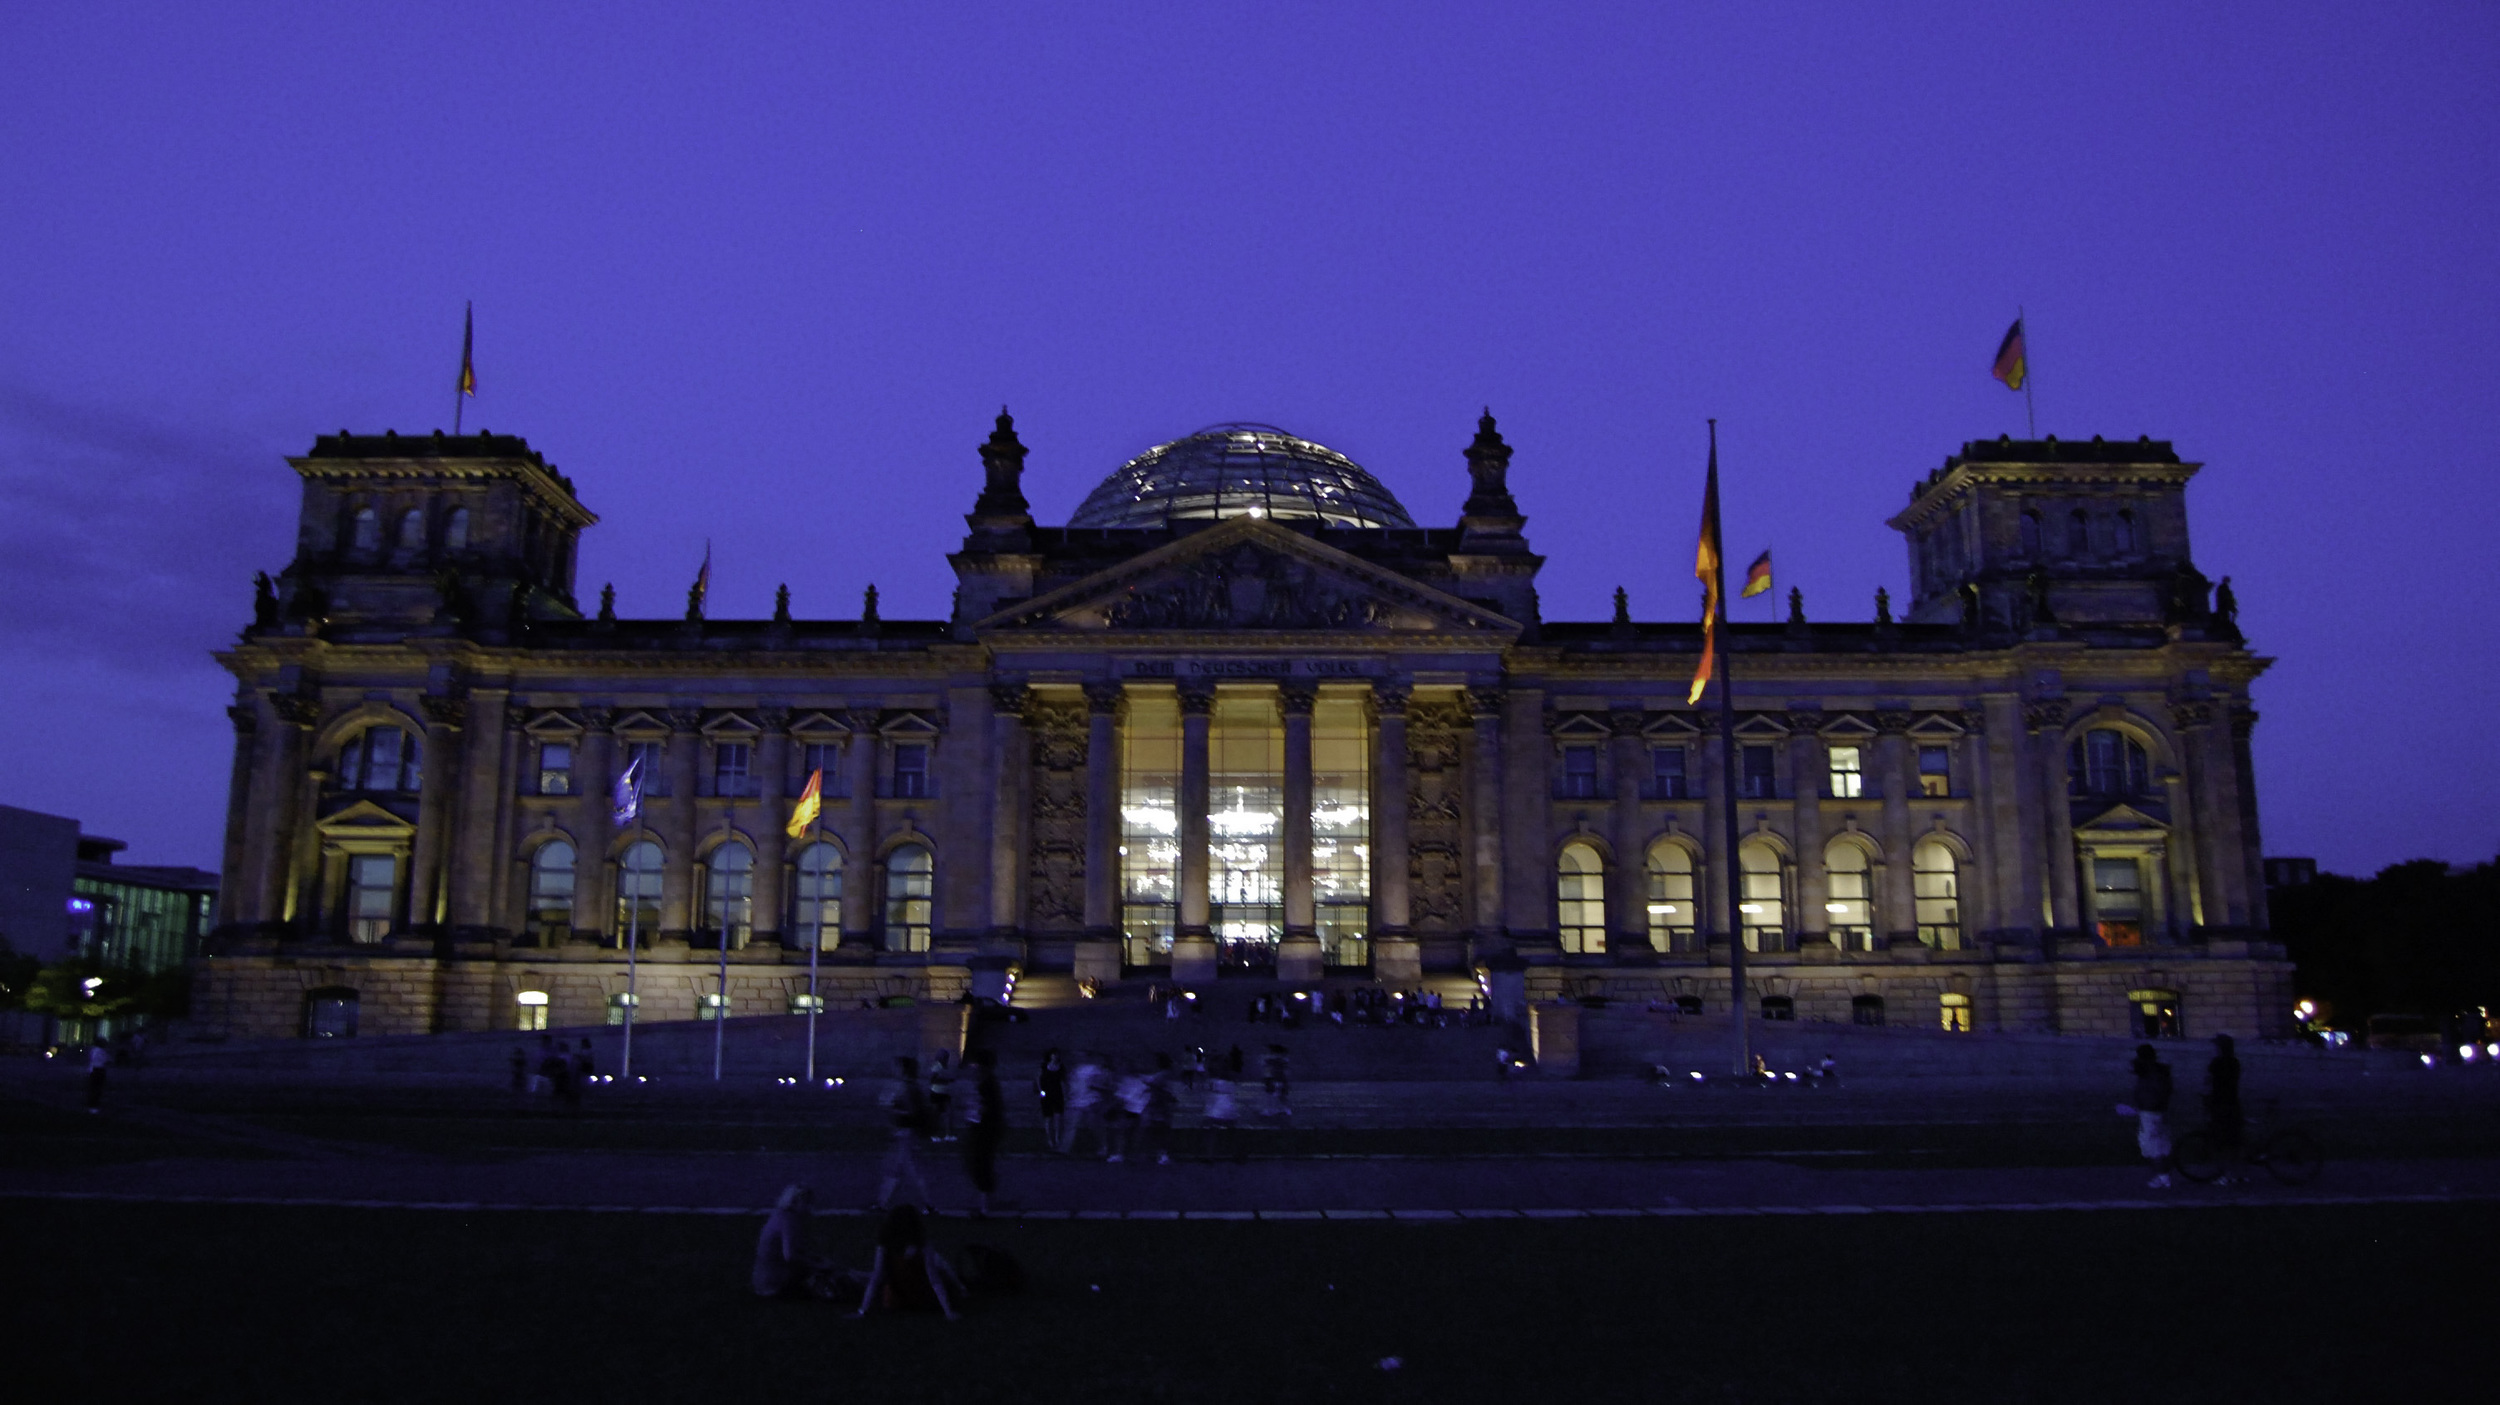 berlin-germany-europe-travel-explore-adventure-architecture-night-food-international-beauty-look-authentic-1005.jpg